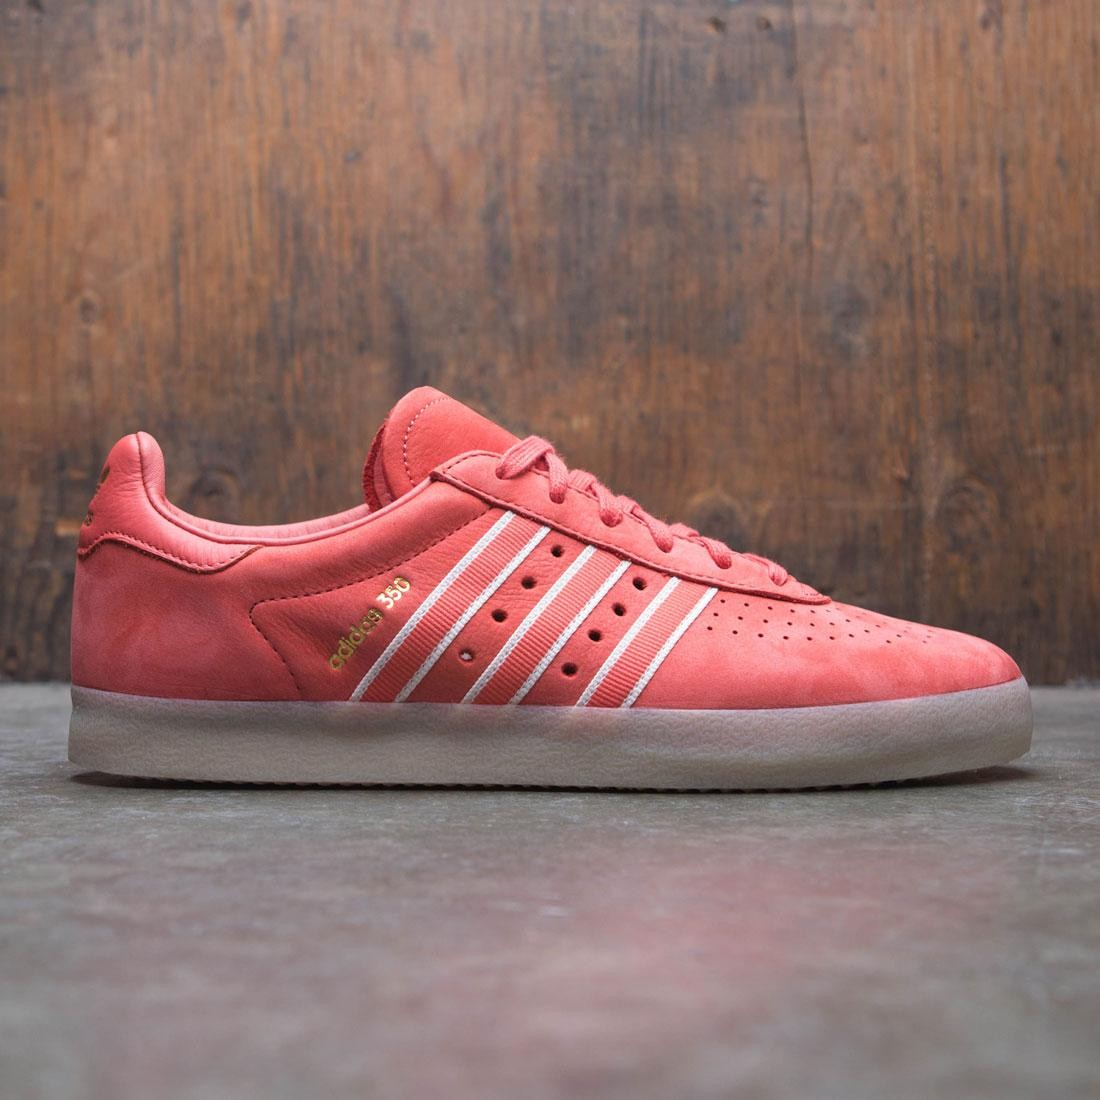 6bf6830784dfa Adidas Men Oyster Holdings Adidas 350 red trace scarlet chalk white  metallic gold